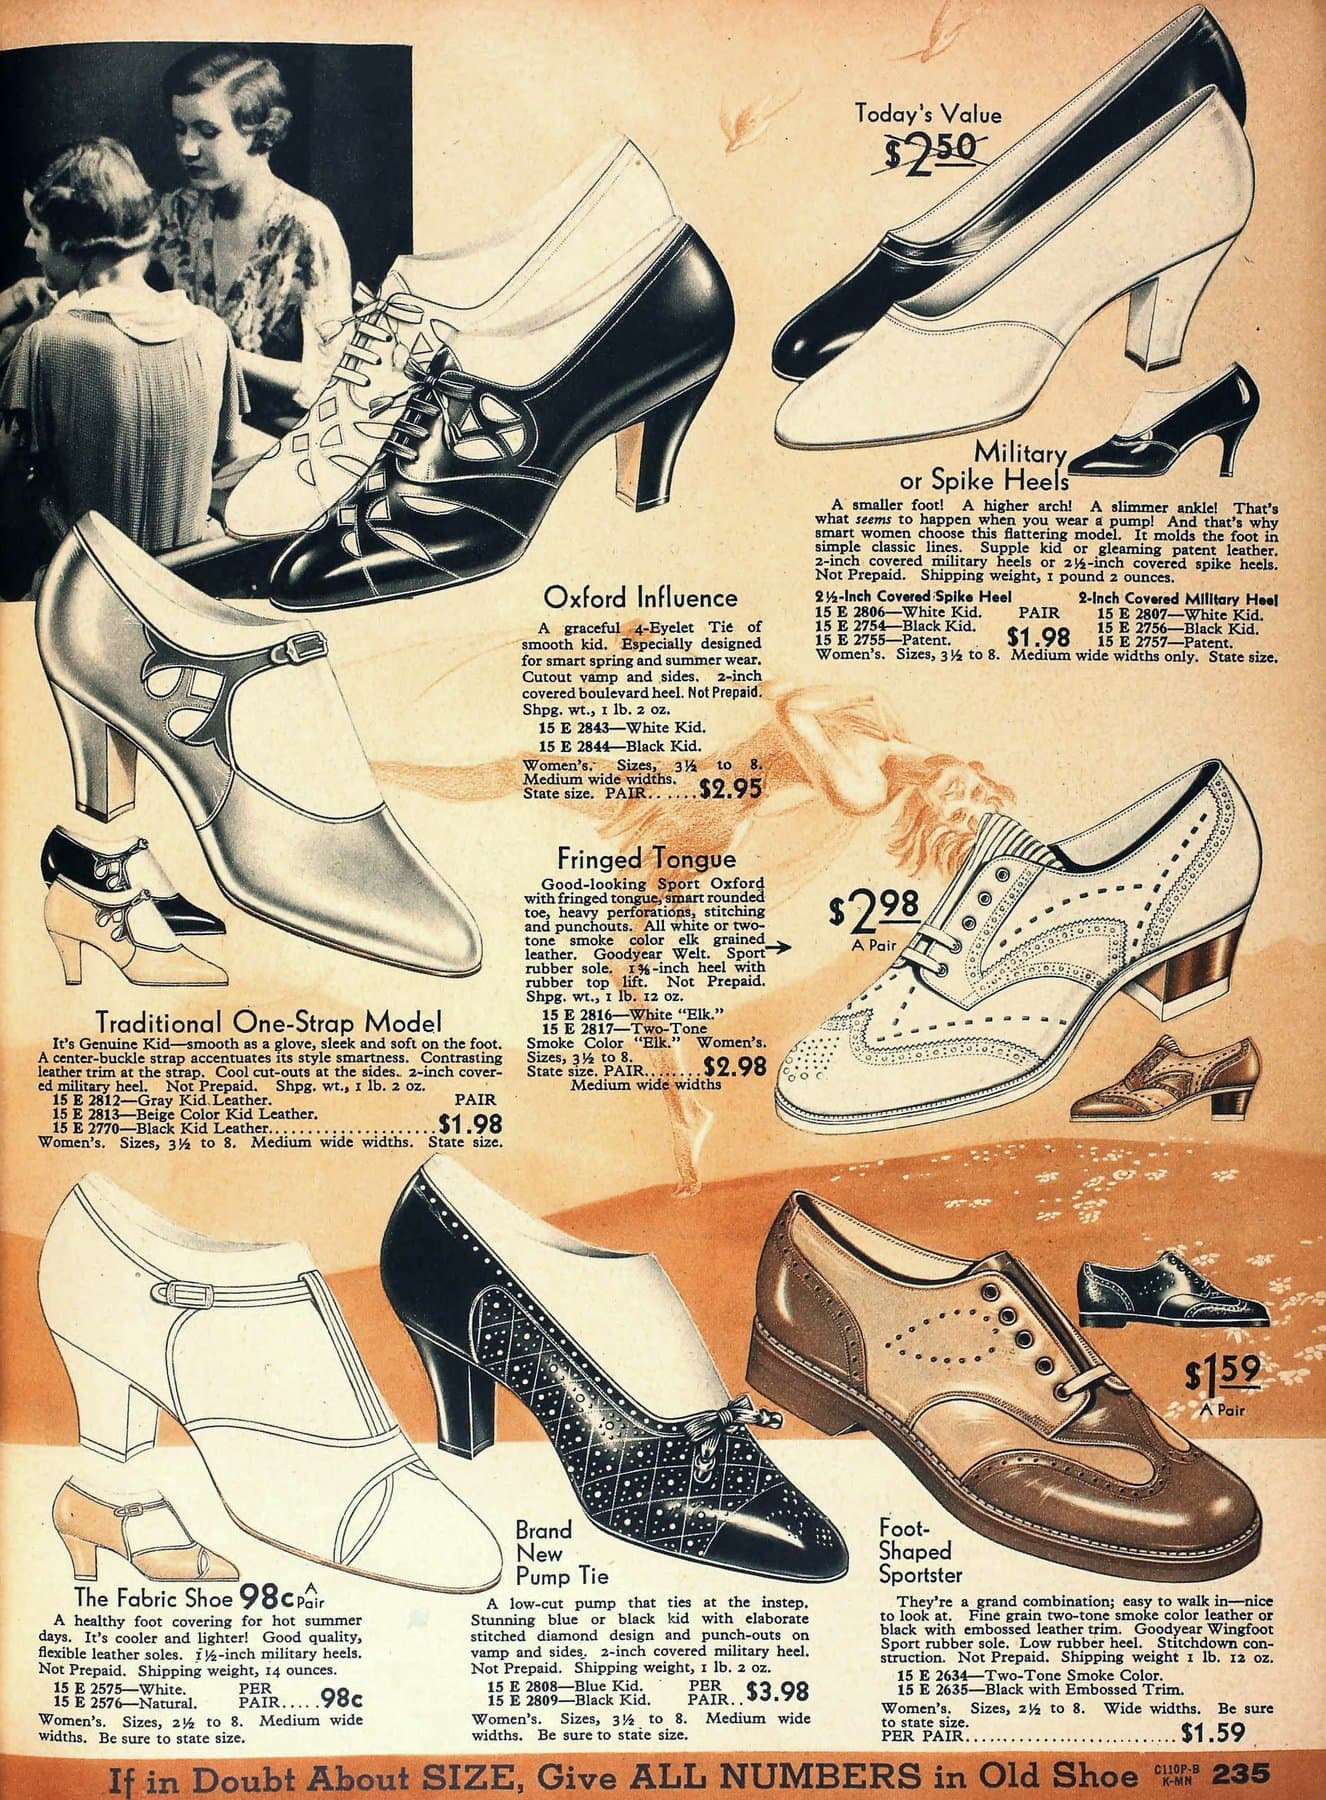 Vintage '30s heels for women from 1934